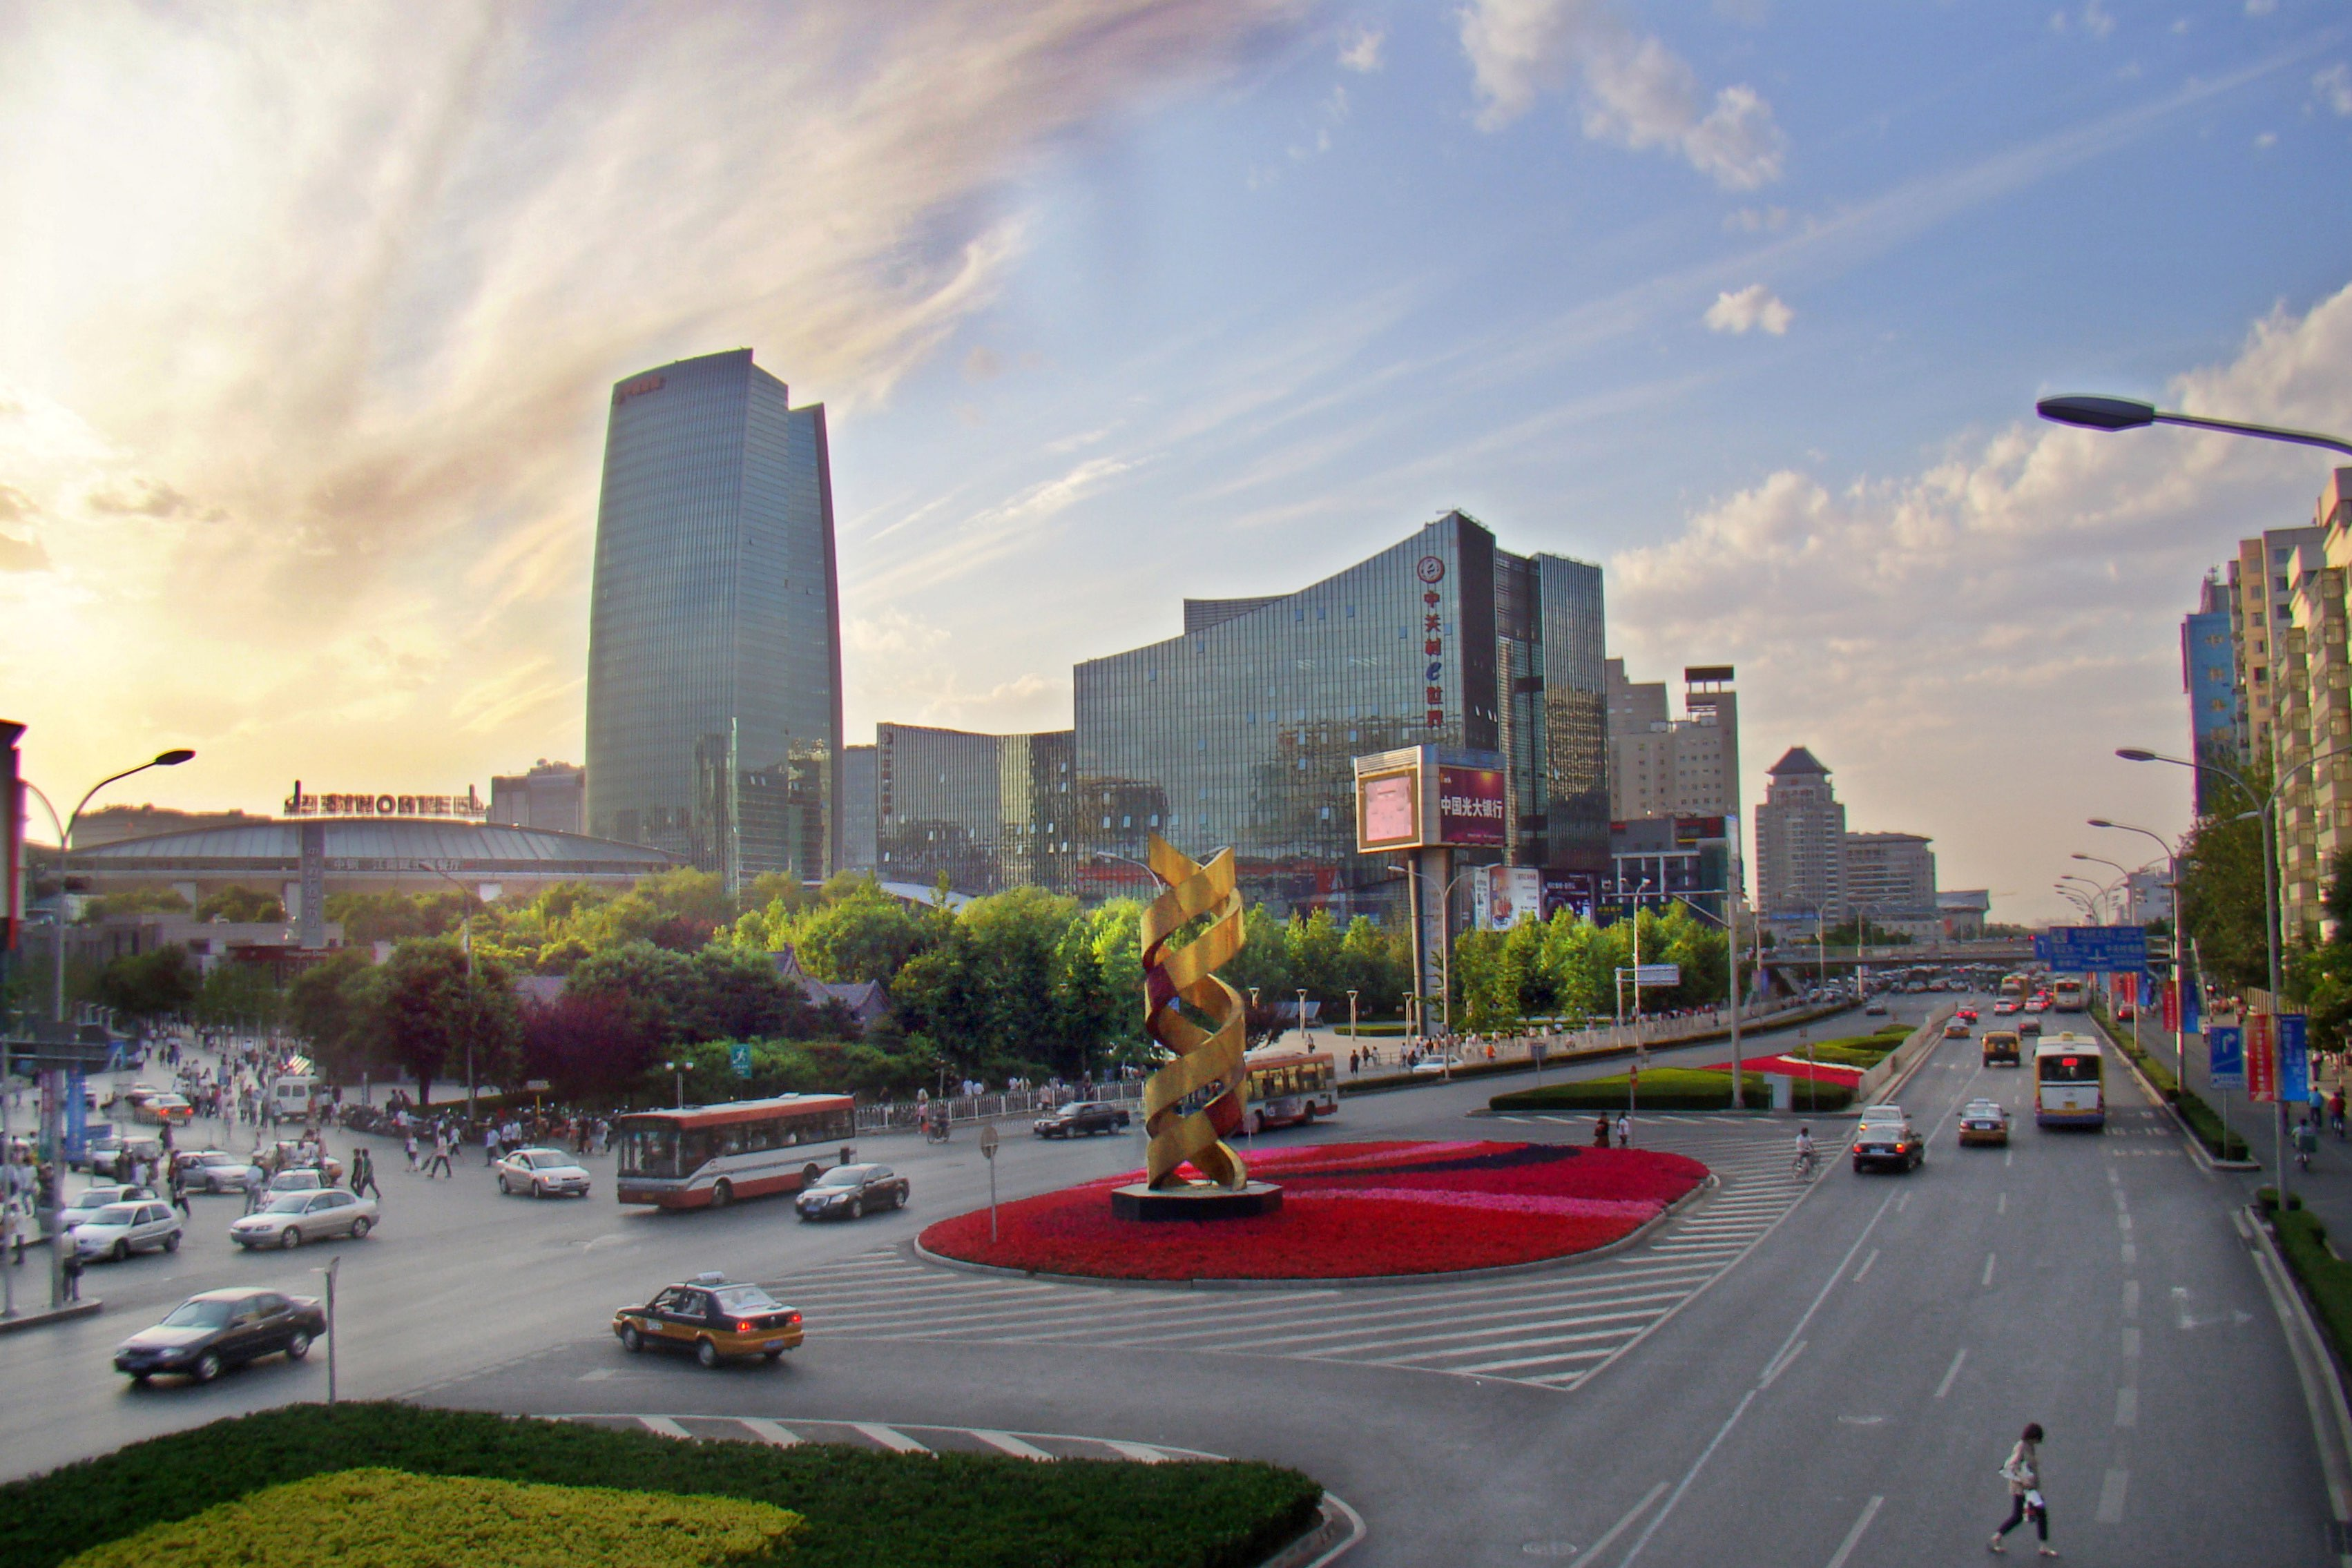 Zhongguancun Science Park image 001